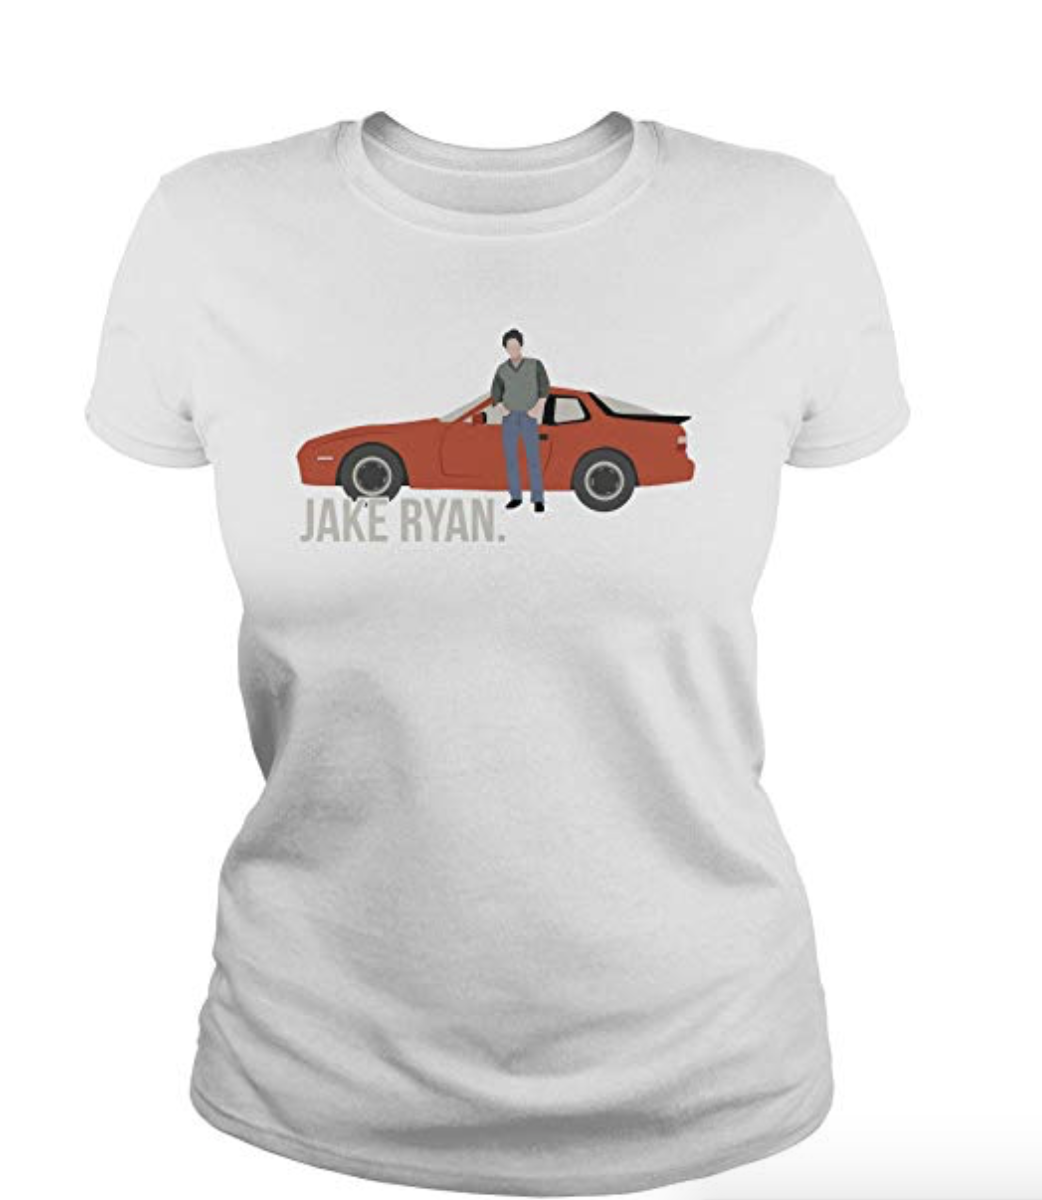 Jake Ryan Sixteen Candles T-Shirt-Meghan Markle